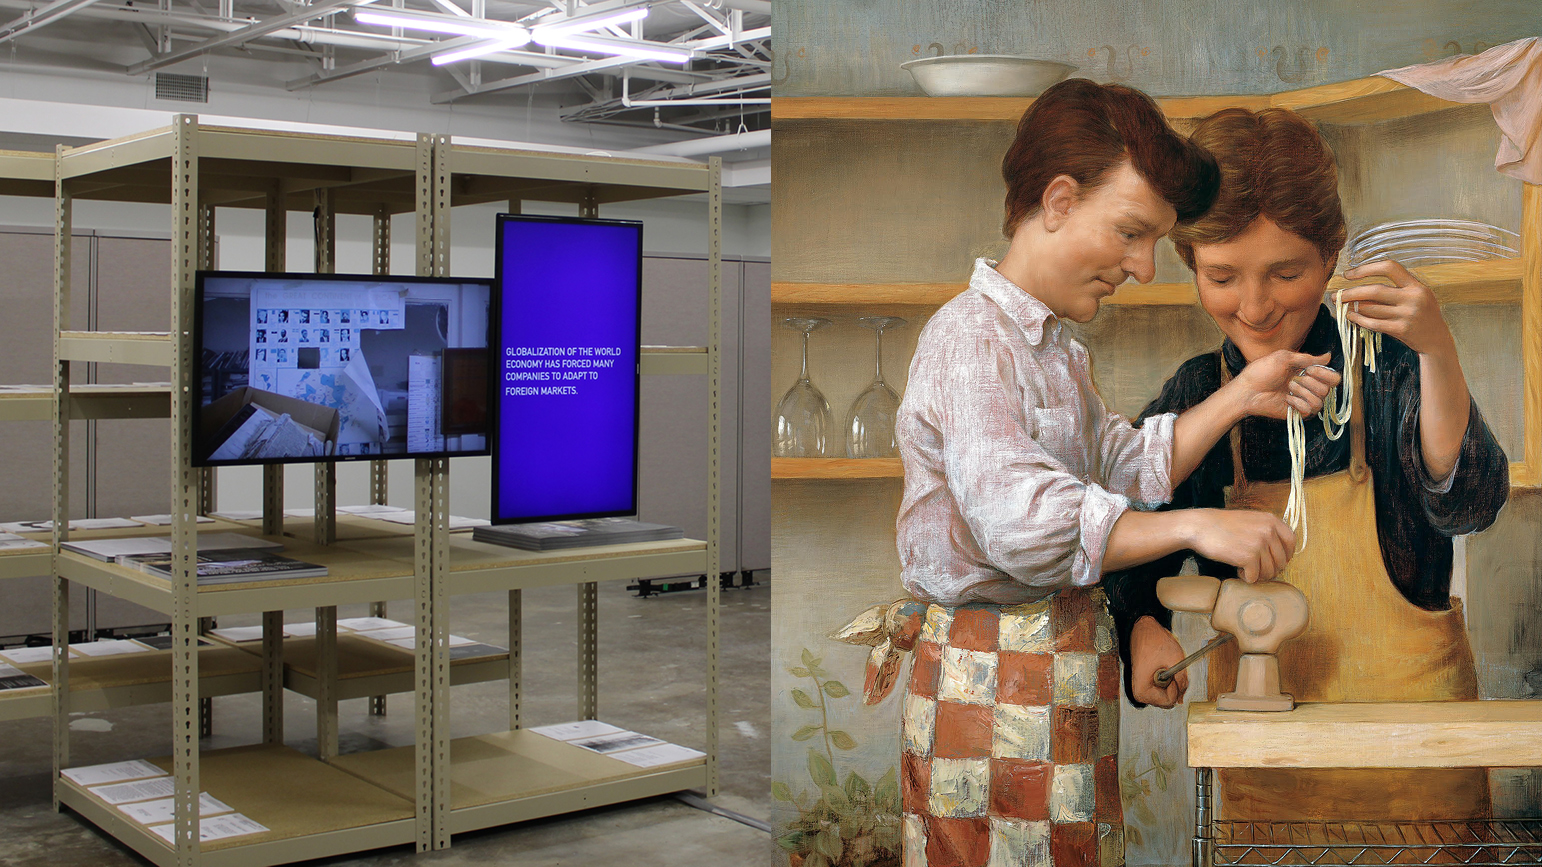 Two images - 1. metal shelving with two television screens; 2. painting of two men making pasta